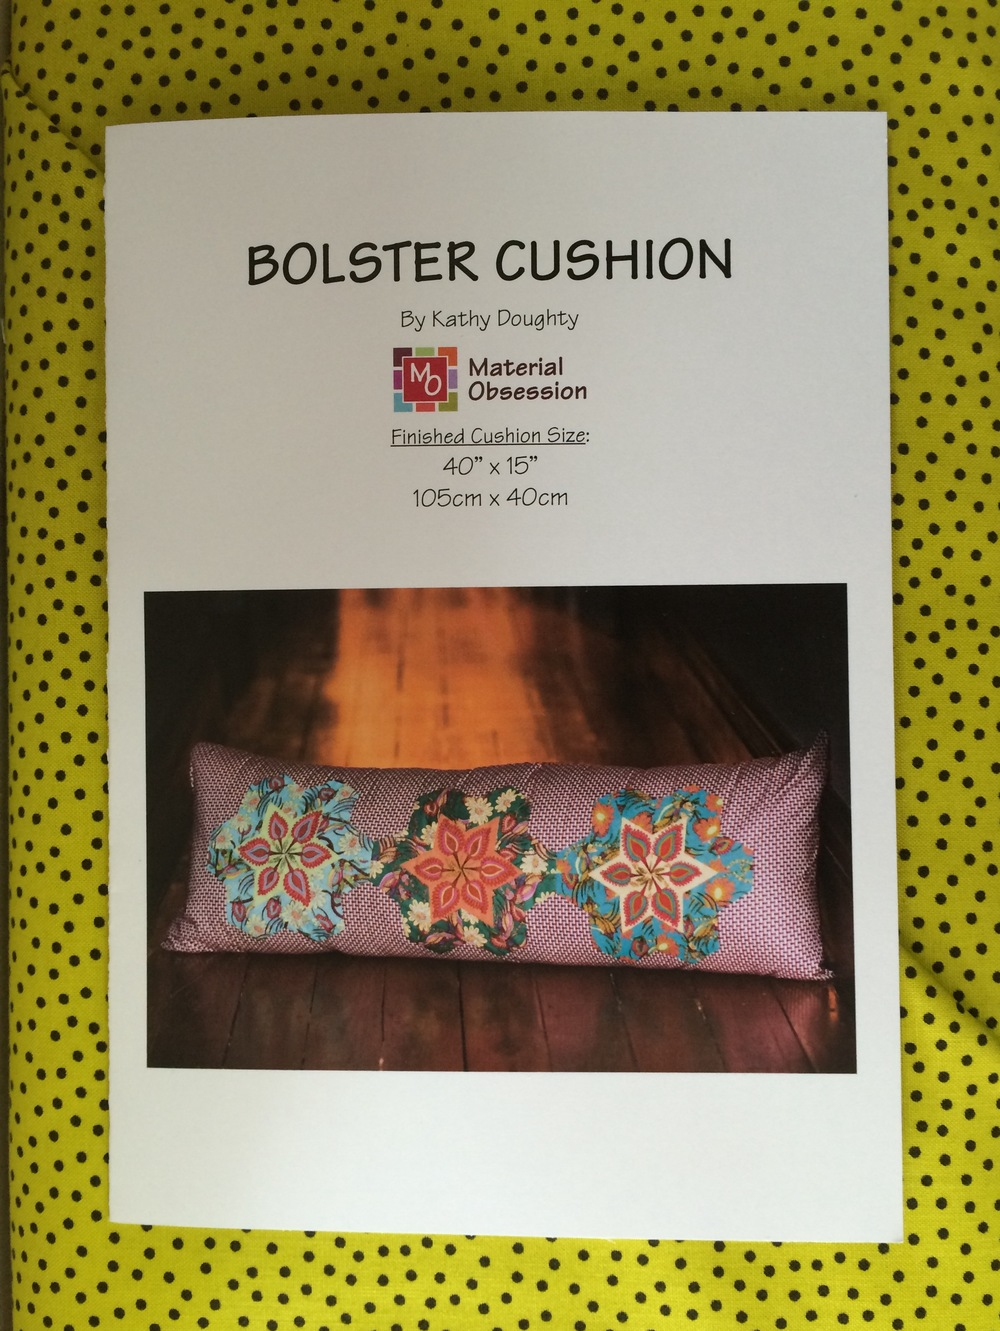 The Bolster Cushion pattern